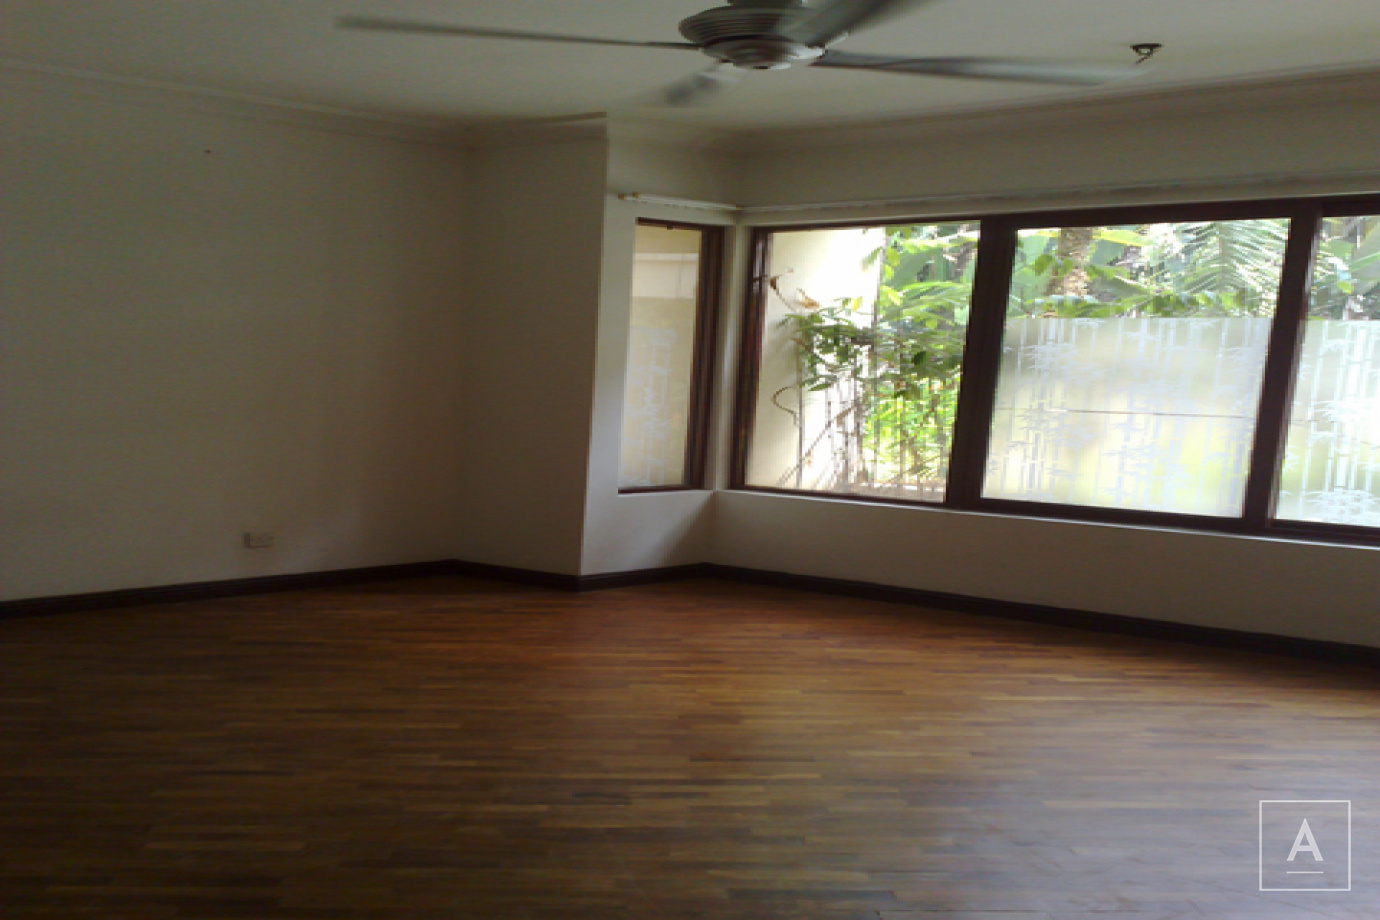 Seri Duta 1, Taman Duta,Kuala Lumpur, 3 Bedrooms Bedrooms, ,3 BathroomsBathrooms,Condominium / Serviced Residence,For Sale,1026